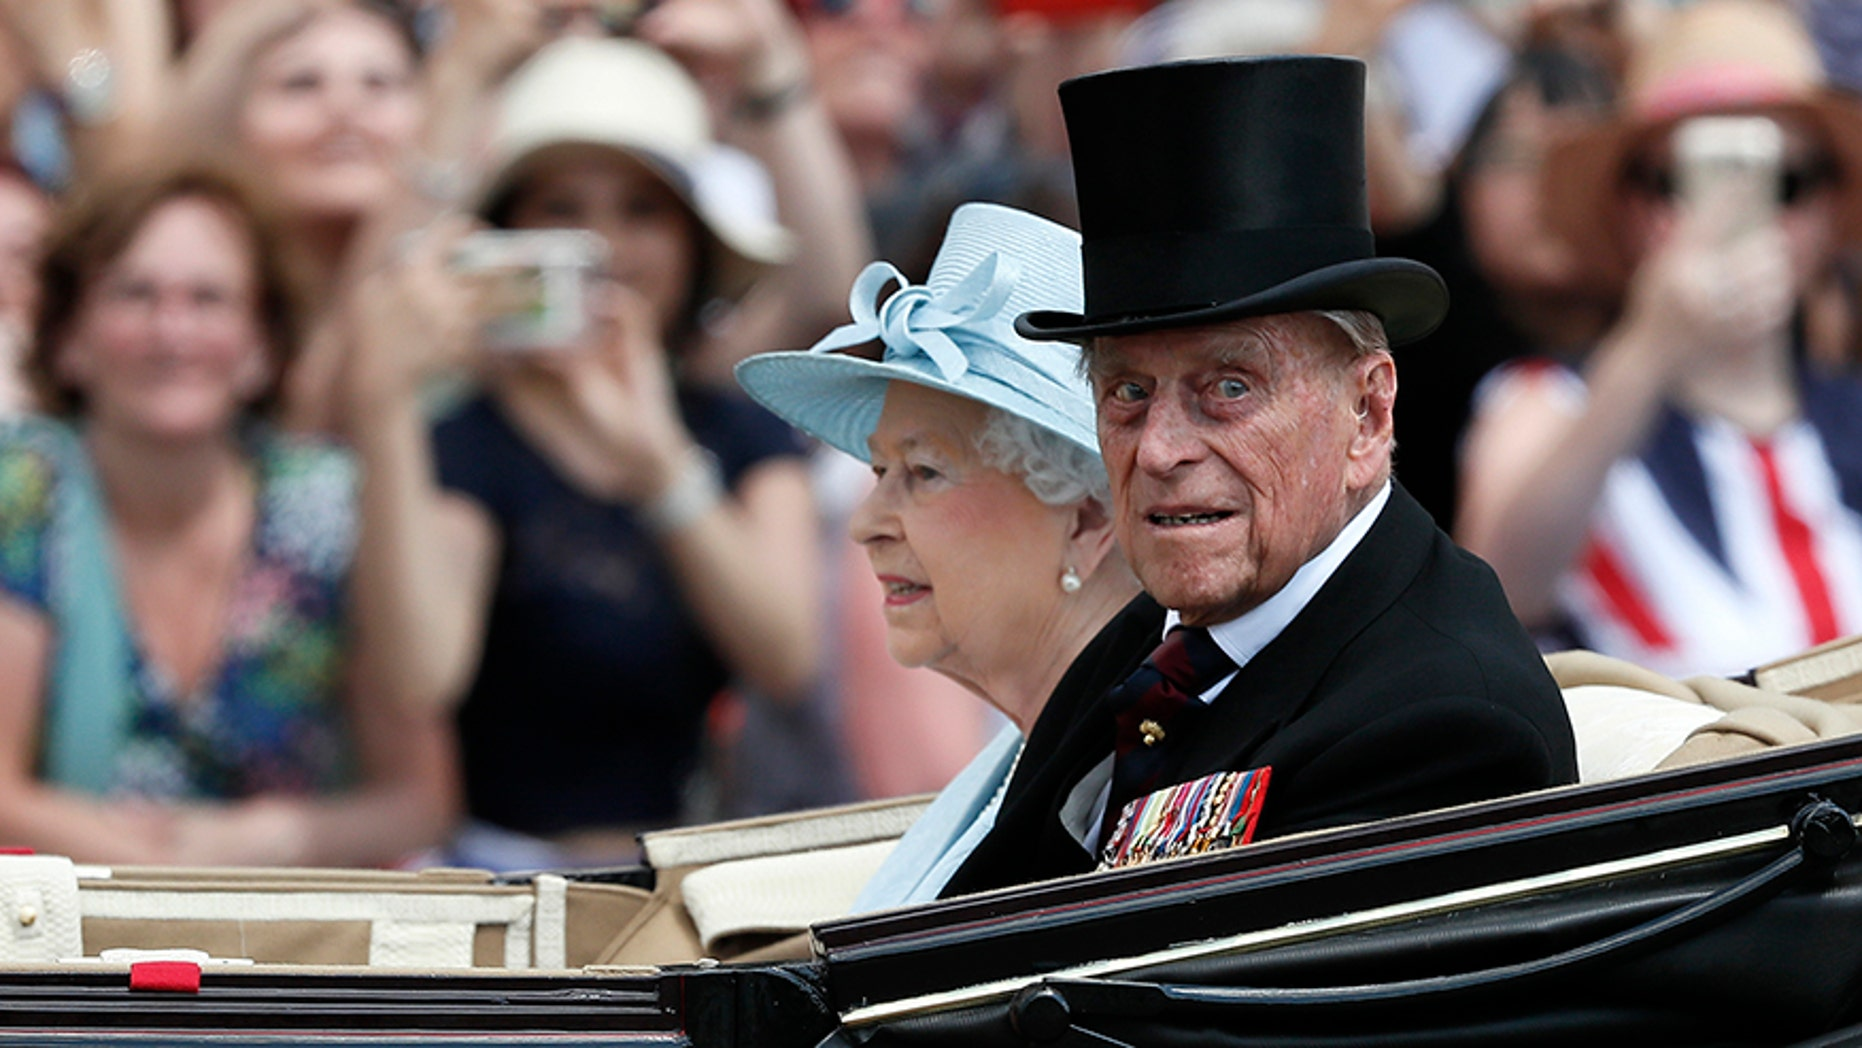 Britain's Queen Elizabeth II and Prince Philip return to Buckingham Palace in a carriage, after attending the annual Trooping the Color Ceremony, June 17, in London. Buckingham Palace said on Wednesday June 21, 2017, Prince Philip is good spirits after being admitted to hospital.